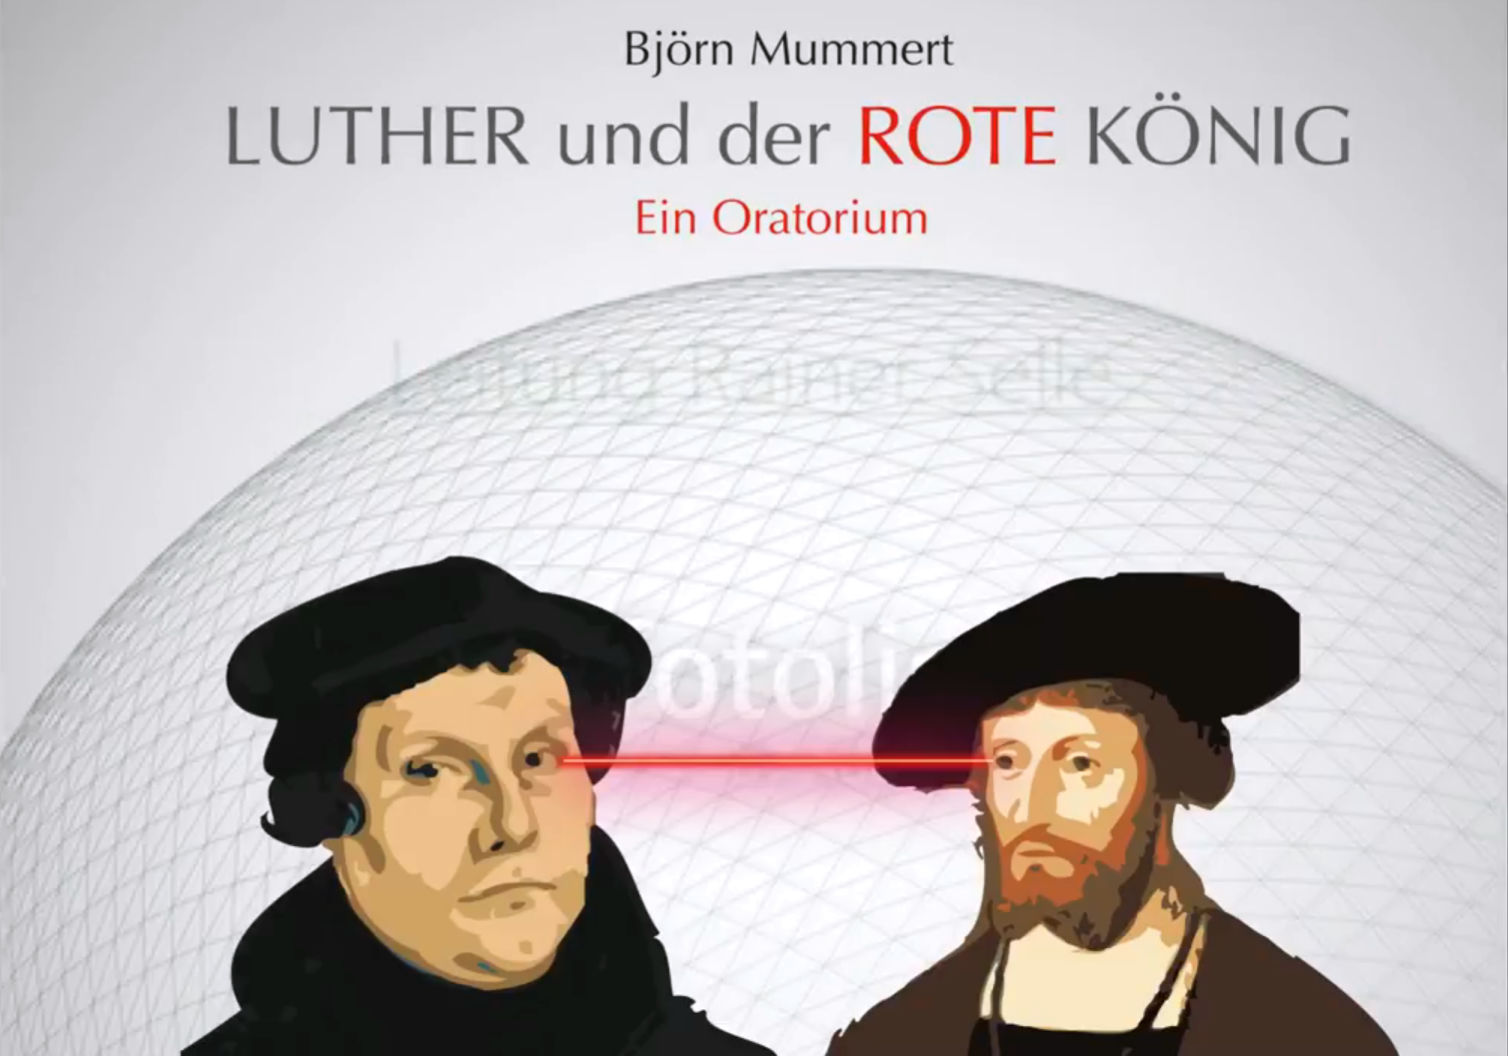 Luther and the red king – An oratory by Björn Mummert